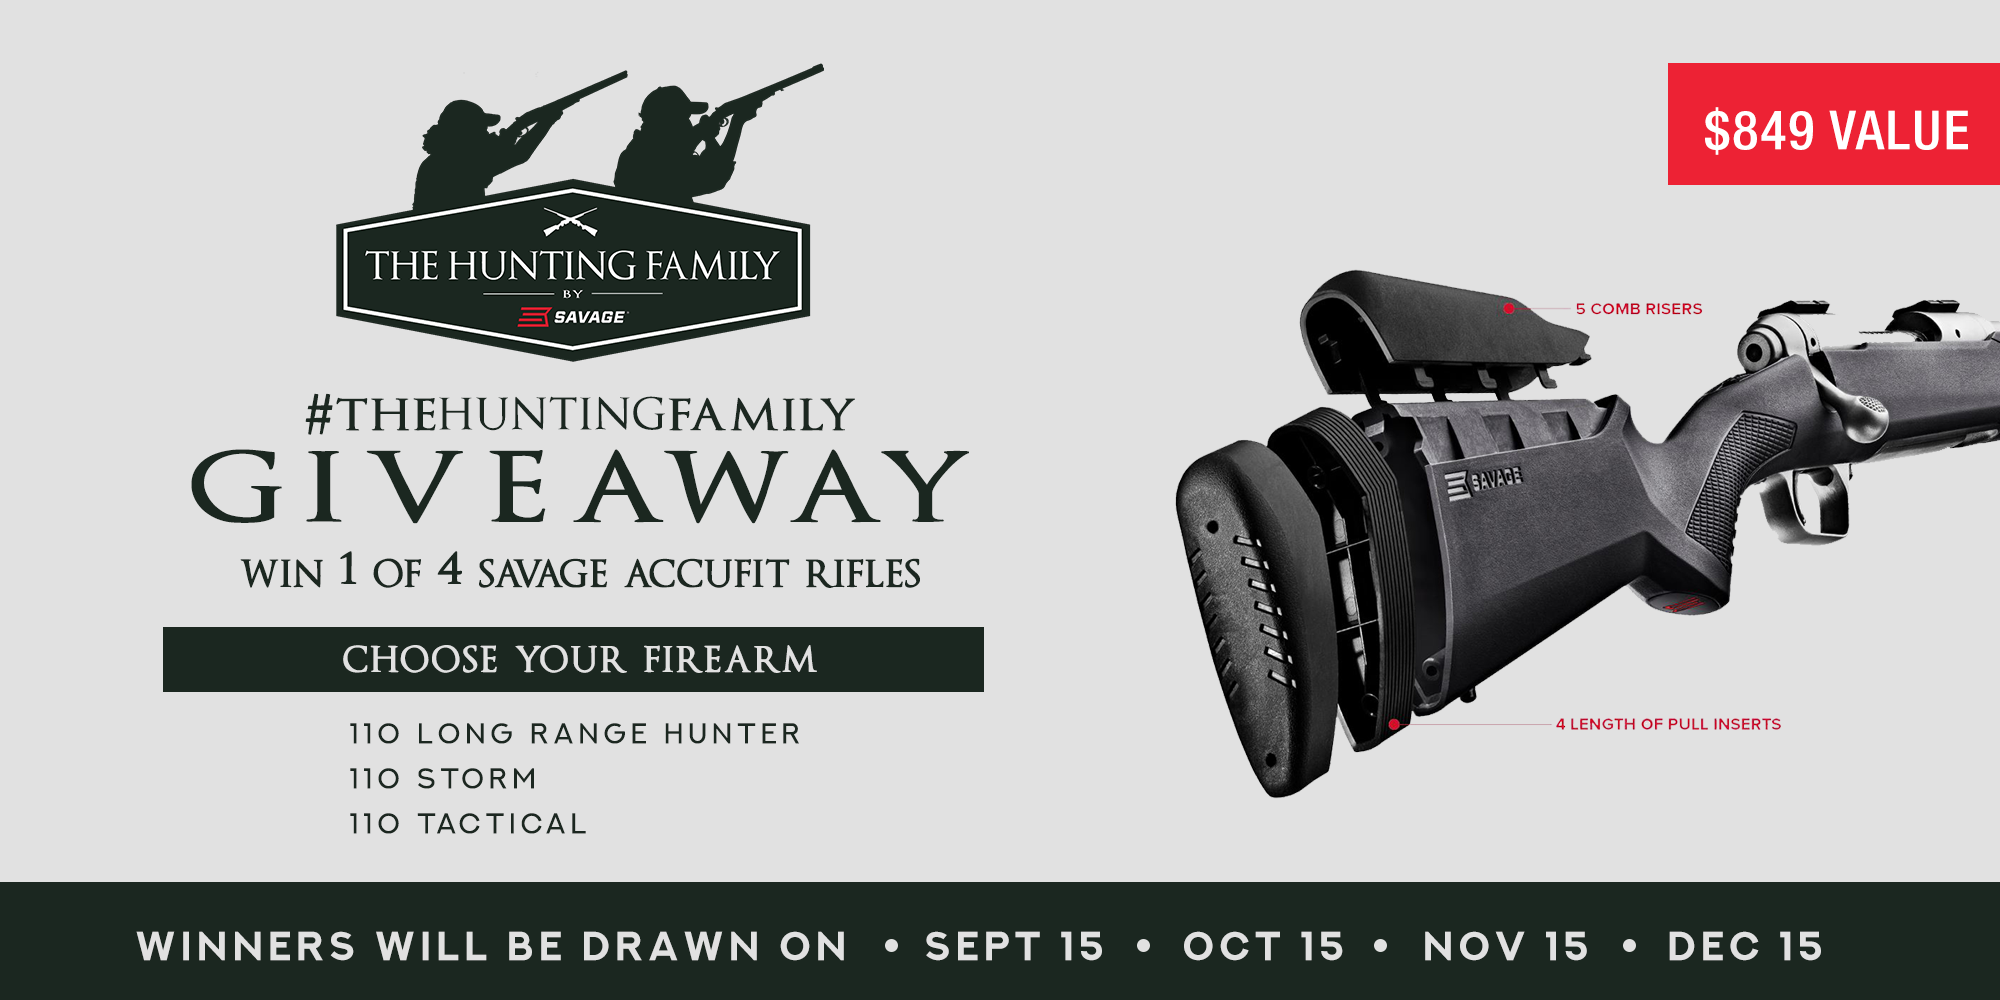 Savage Rifle Giveaway